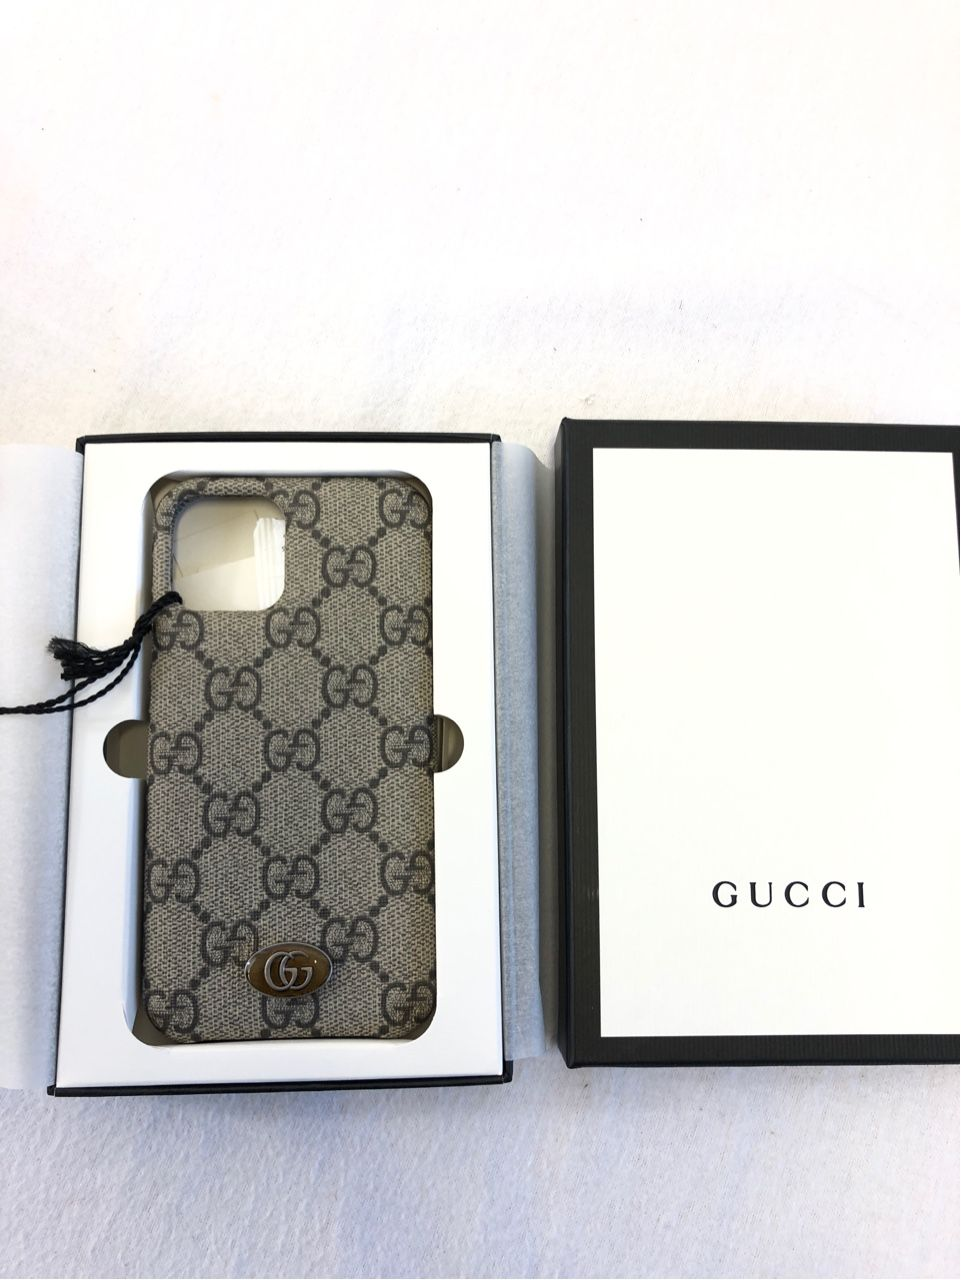 Gucci Ophidia GG iPhone 11 Pro case beige/ebony GG Supreme Style # 623093 K5I0S 9742